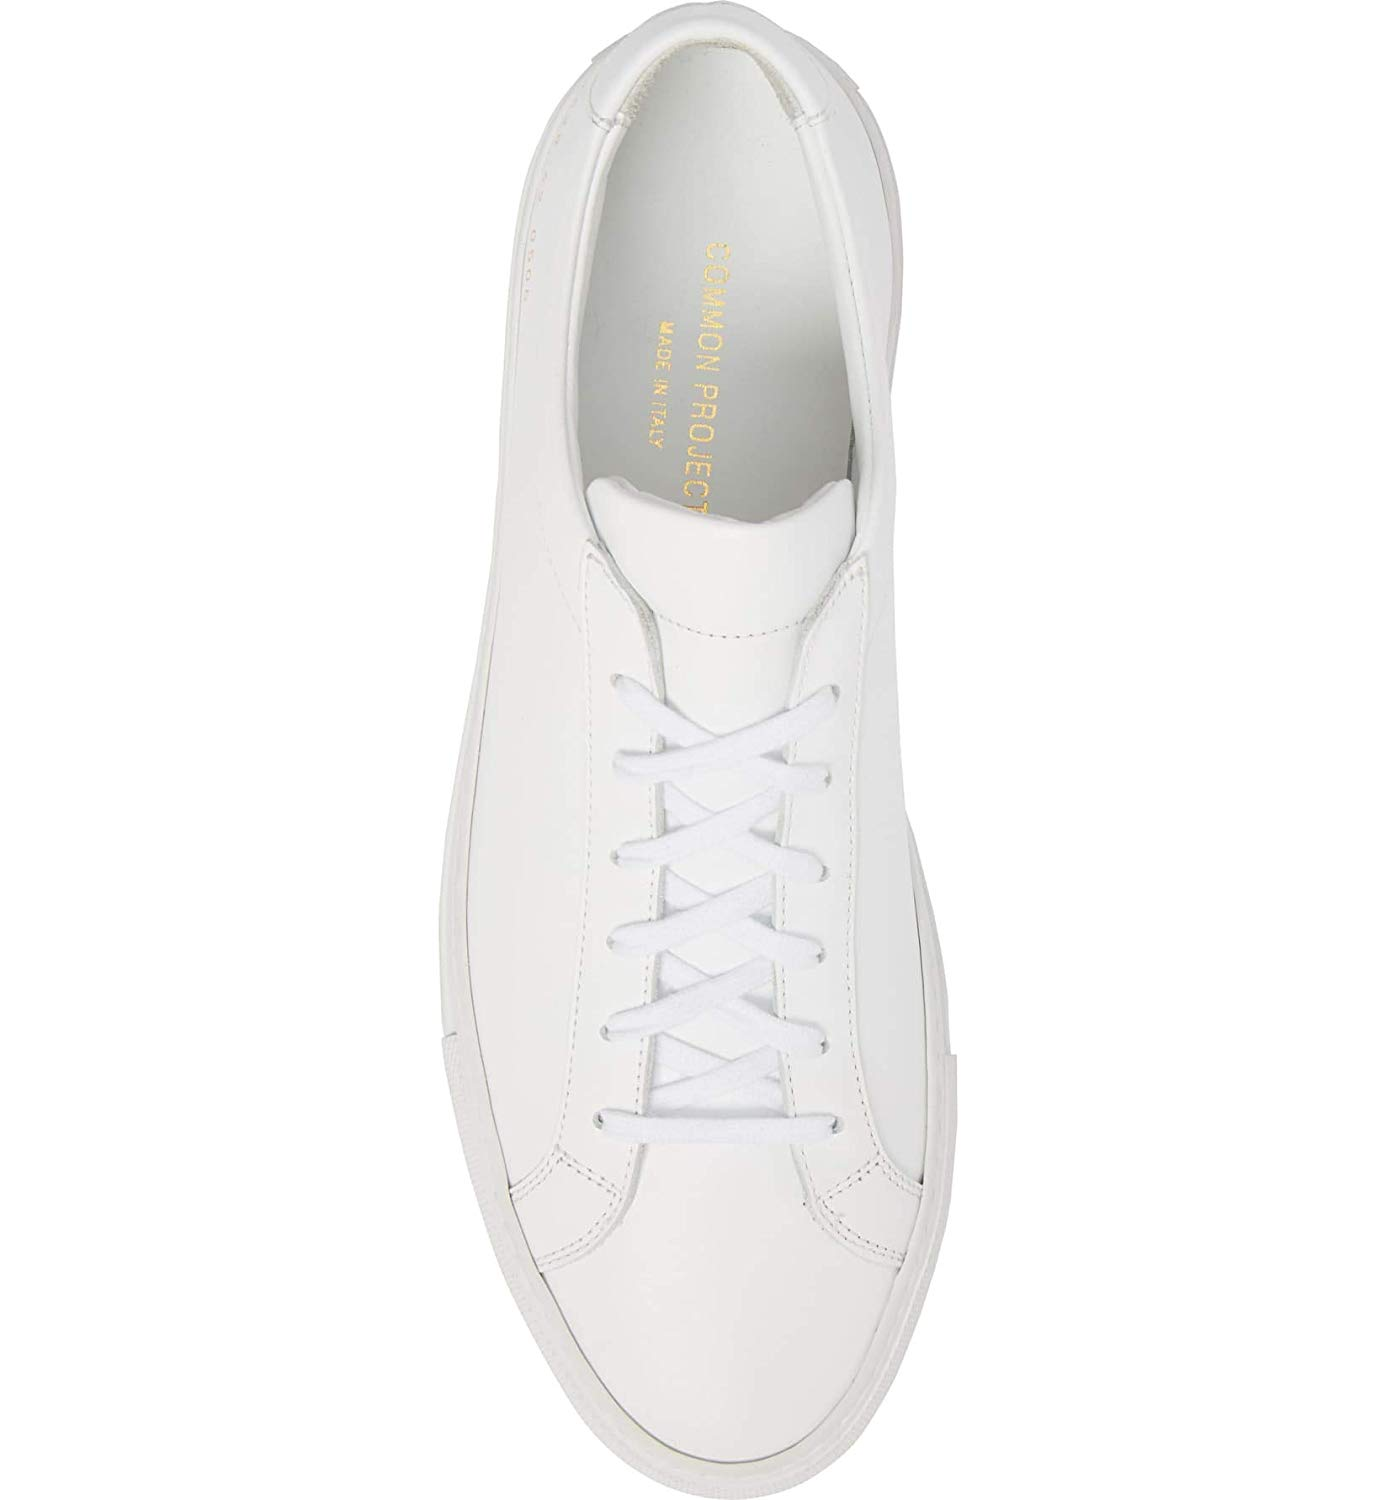 Common Projects Achilles スニーカー